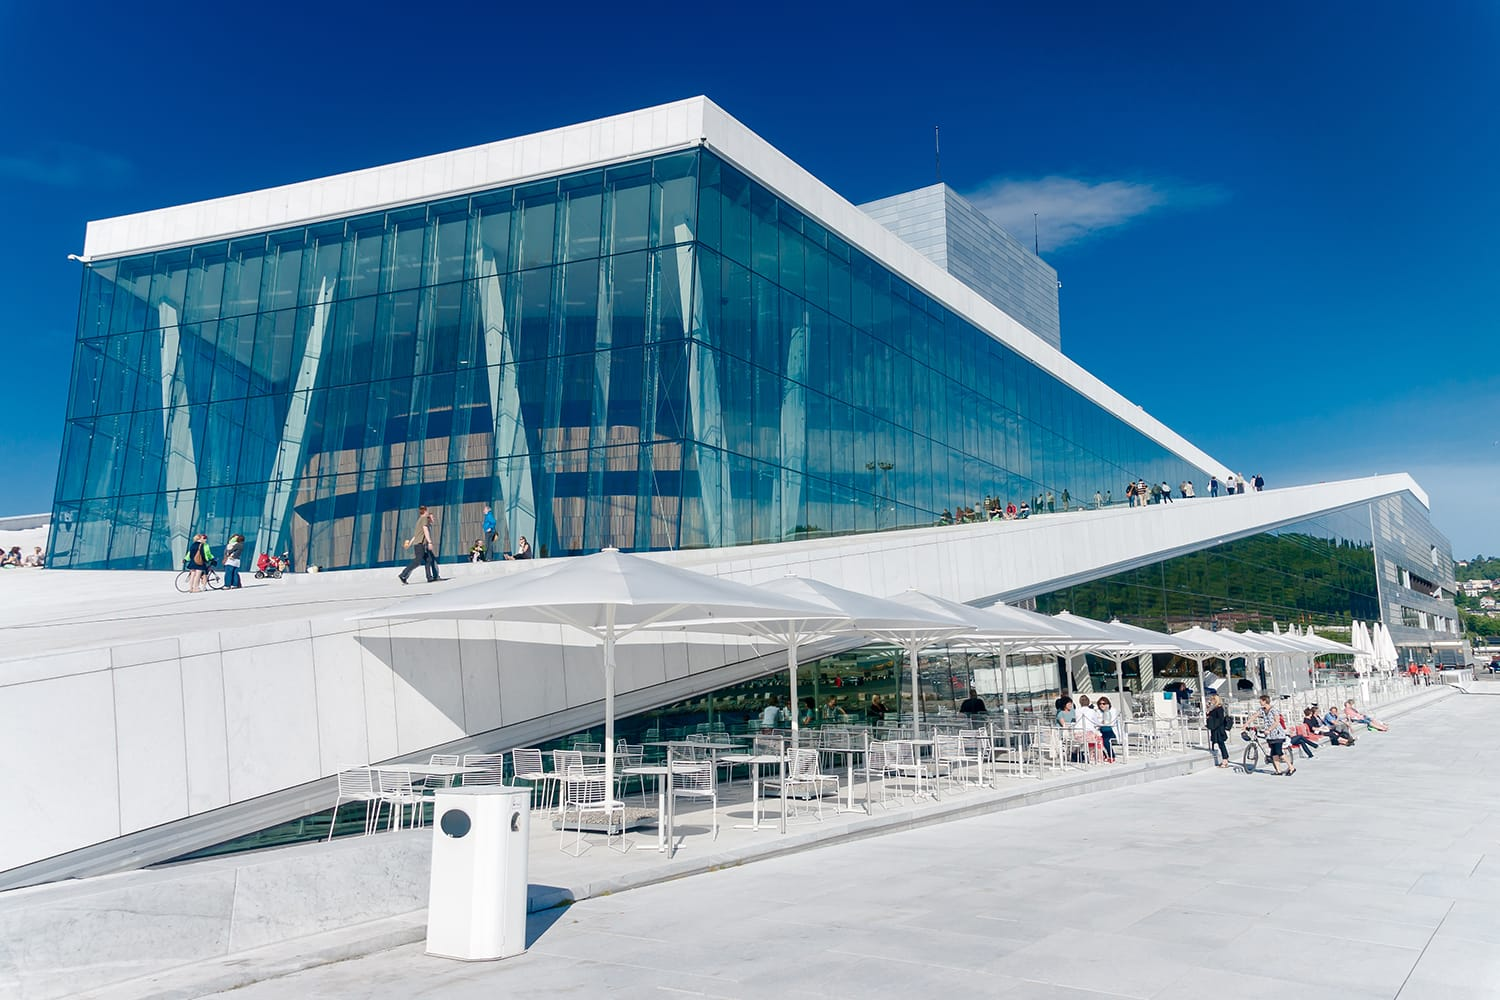 View on a side of the National Oslo Opera House in Oslo, Norway